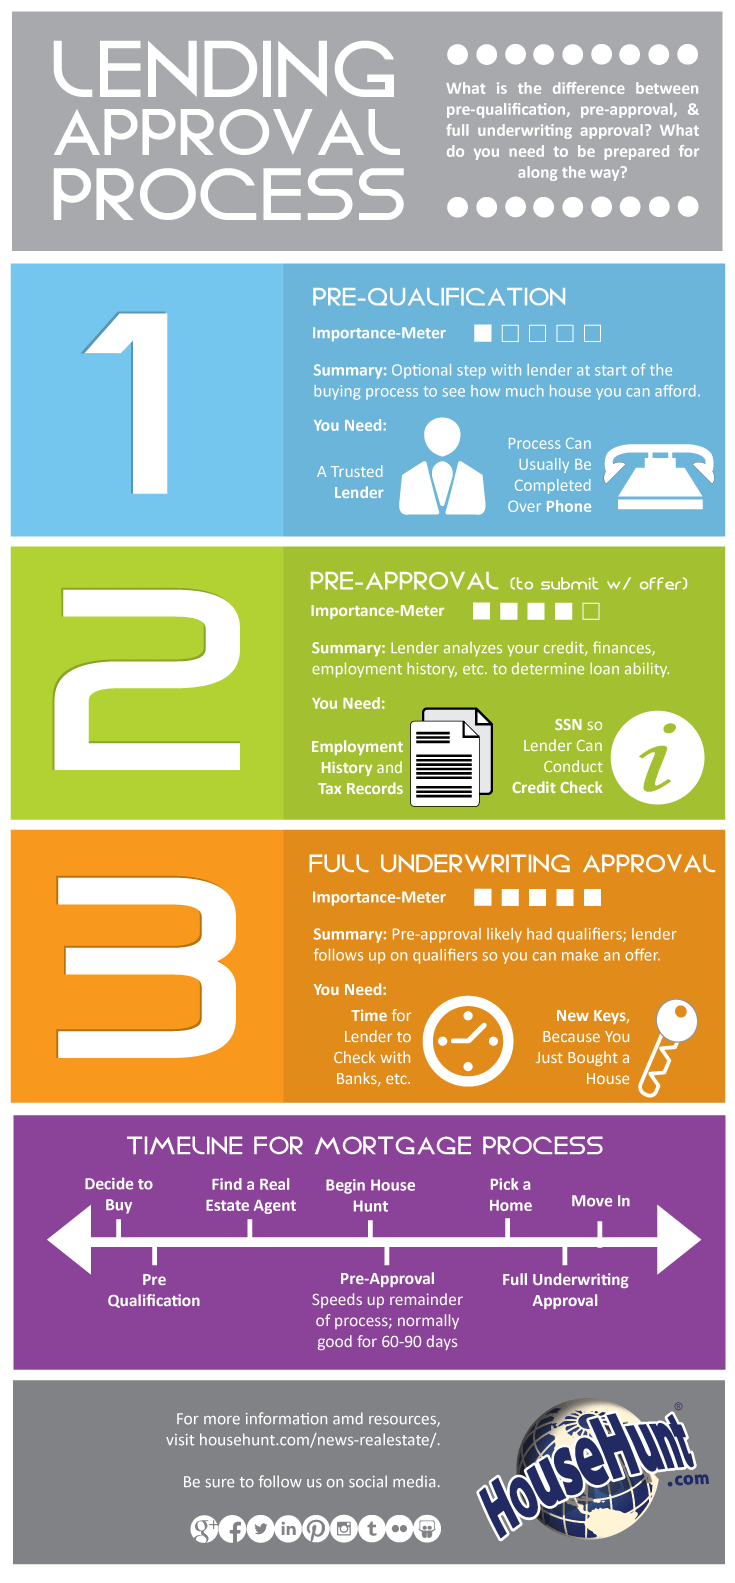 3 Types Of Lending Approvals Infographic Househunt Real Estate Blog Real Estate Infographic Mortgage Loans First Time Home Buyers